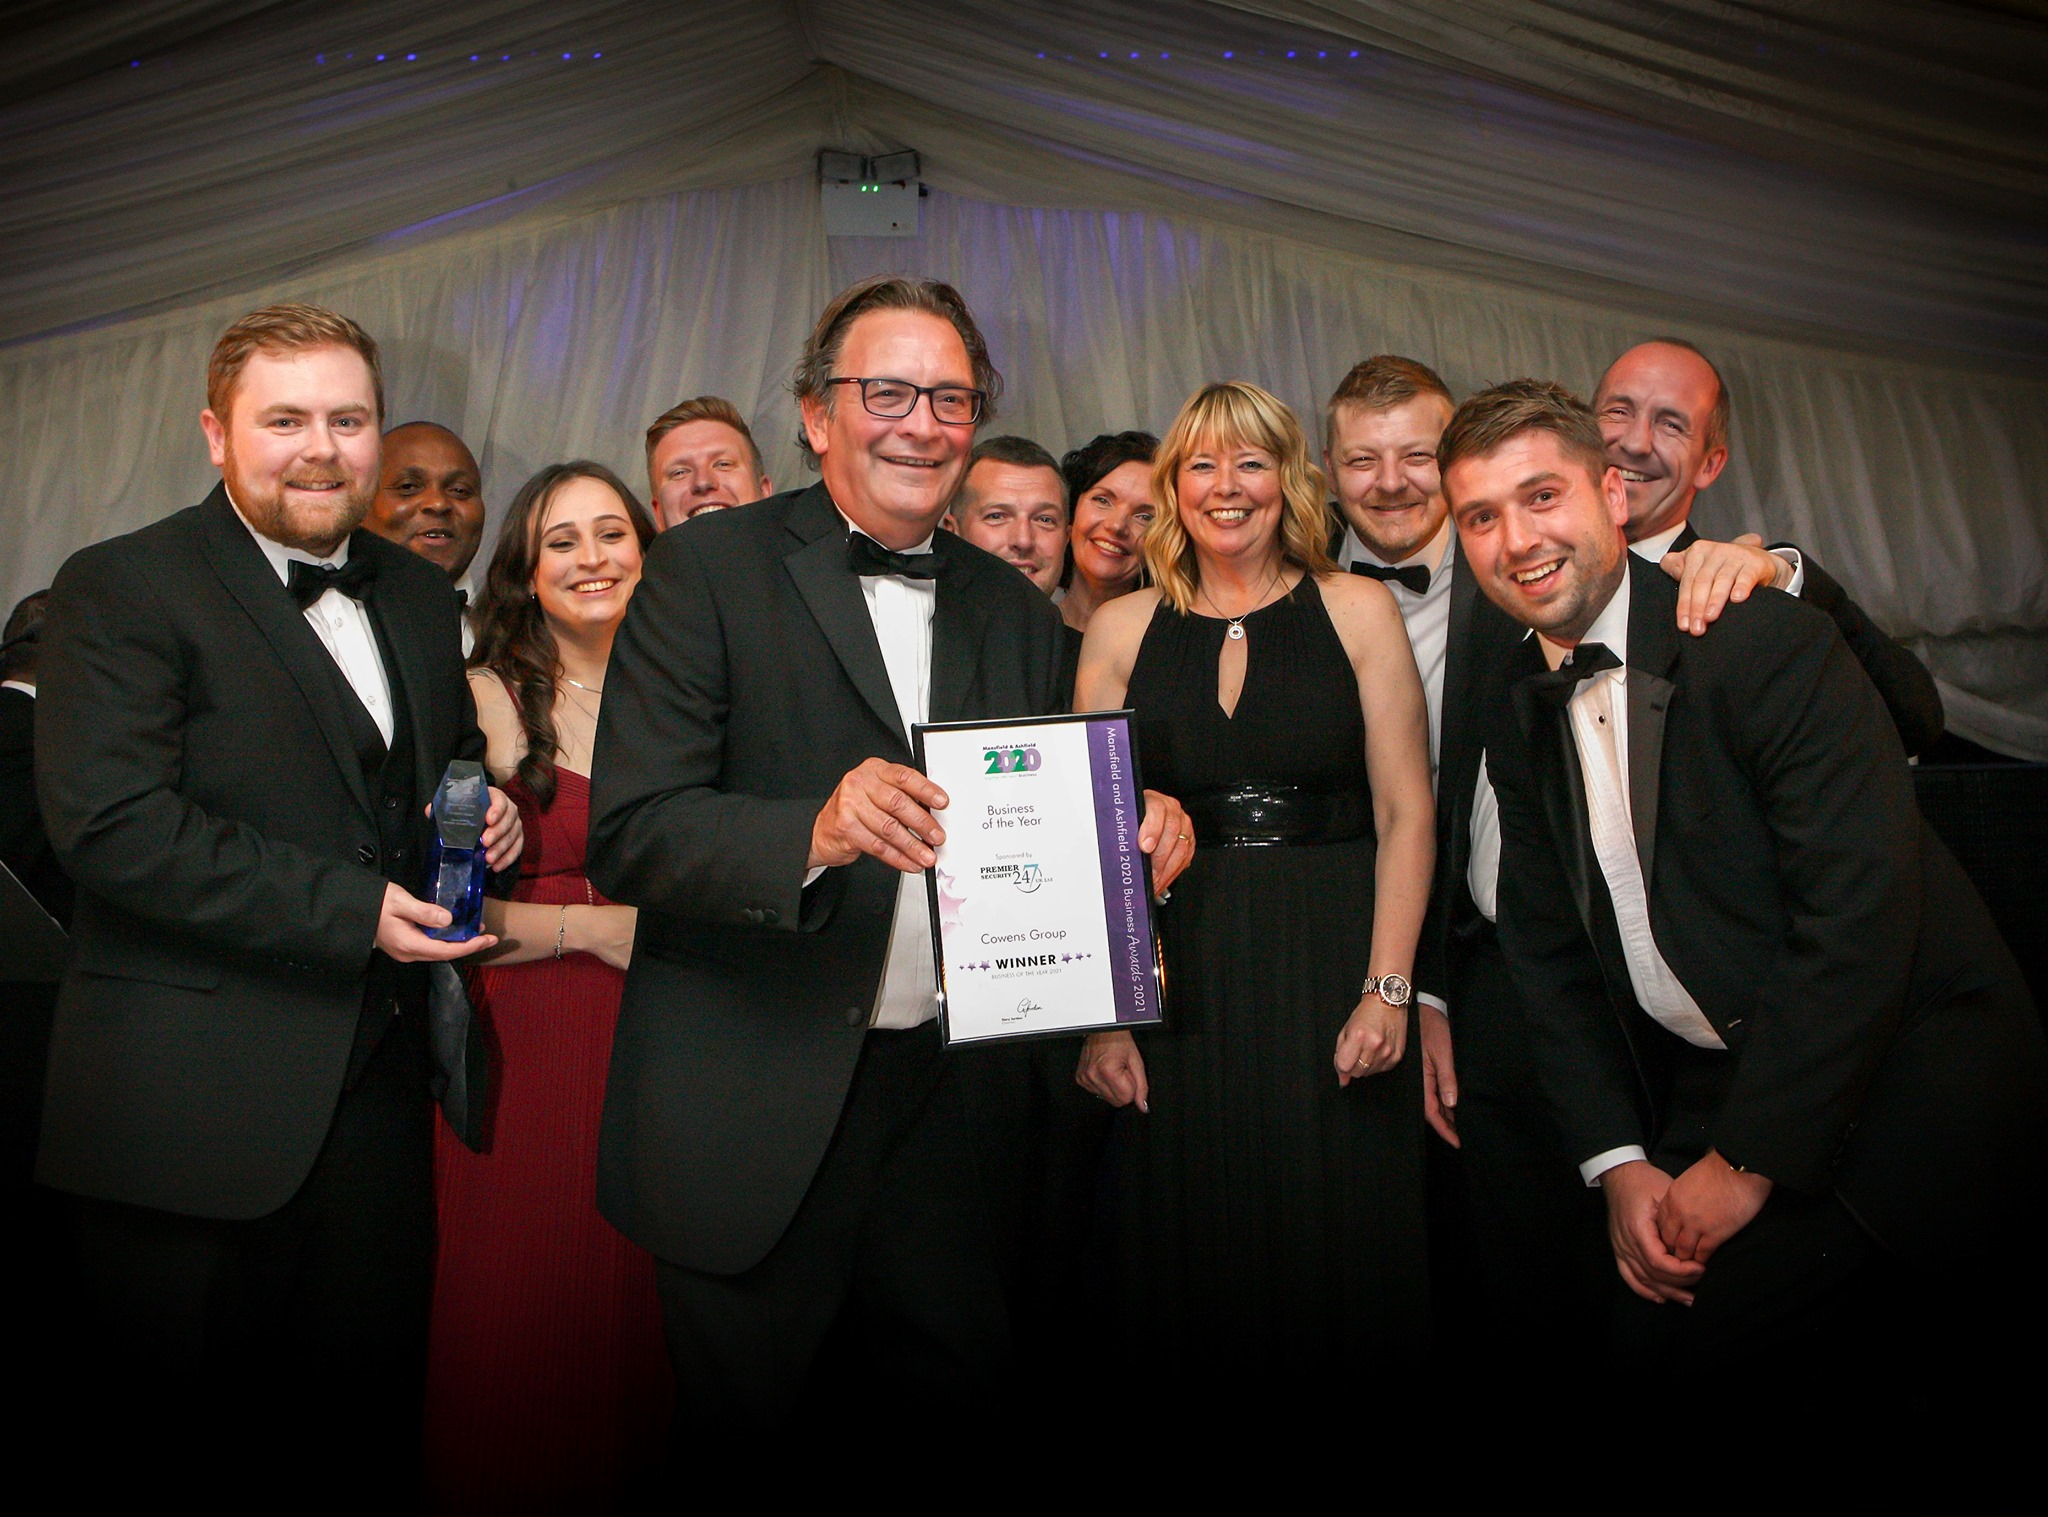 Cowens wins 2021 Business of the Year Award